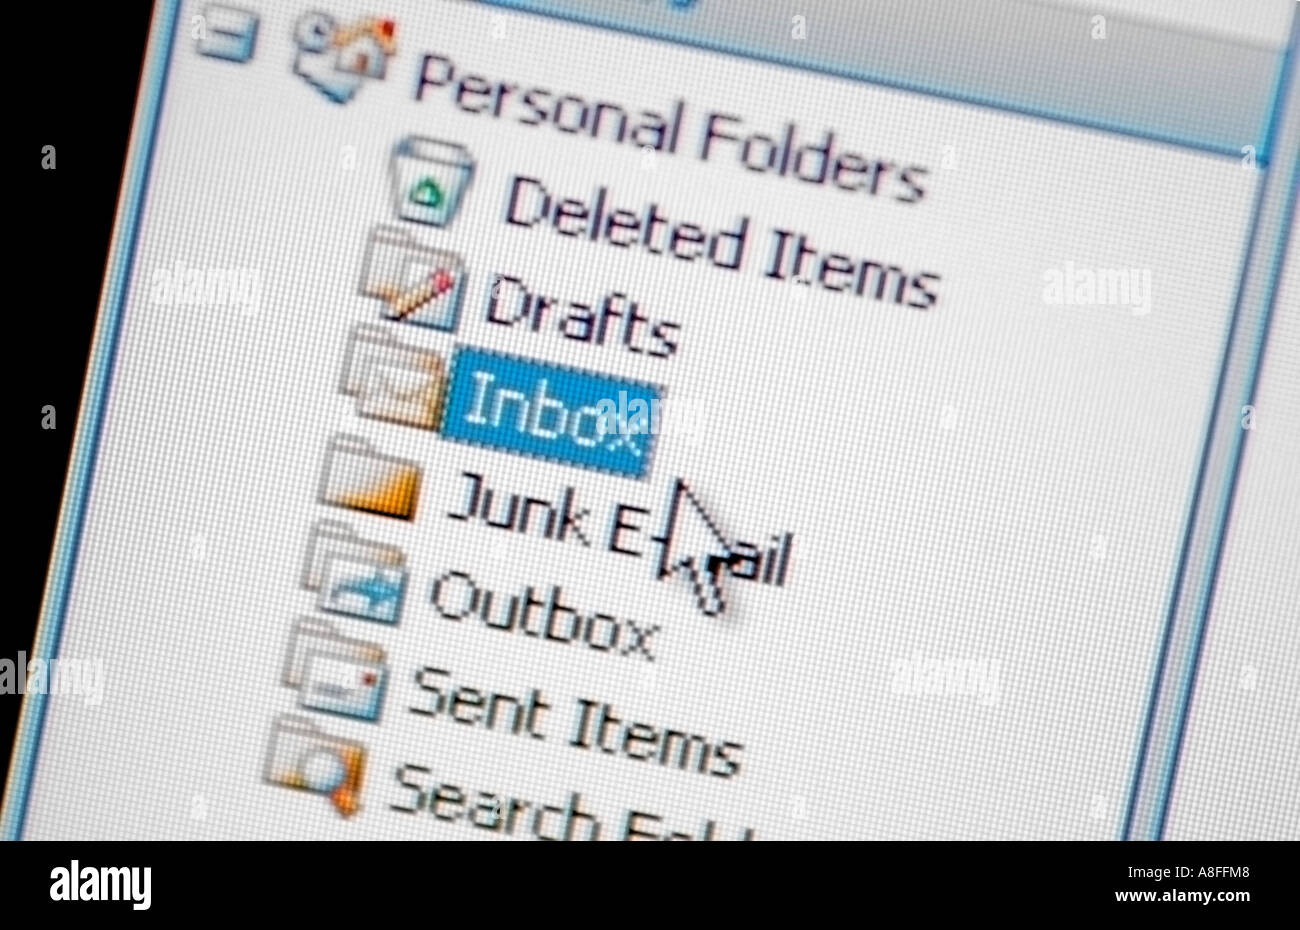 Email Inbox and Mouse Cursor - Stock Image